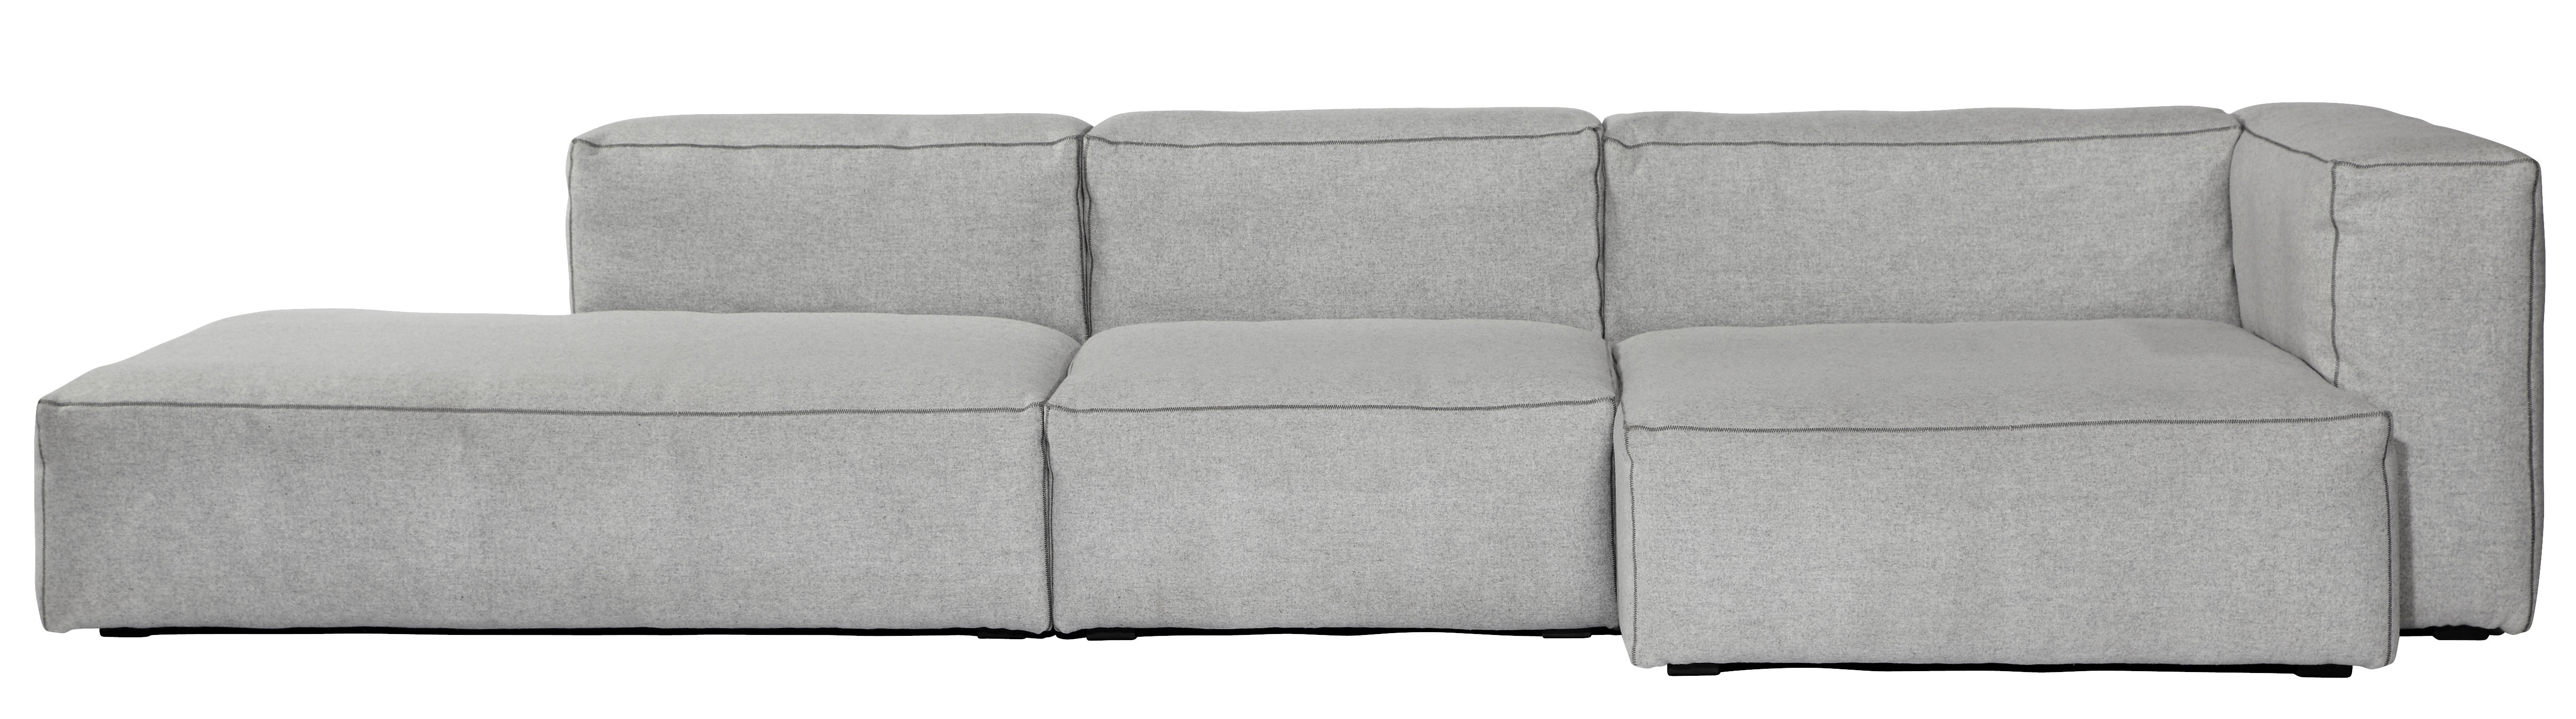 soft mags corner sofa right armrest l 302 cm light grey right armrest by hay. Black Bedroom Furniture Sets. Home Design Ideas